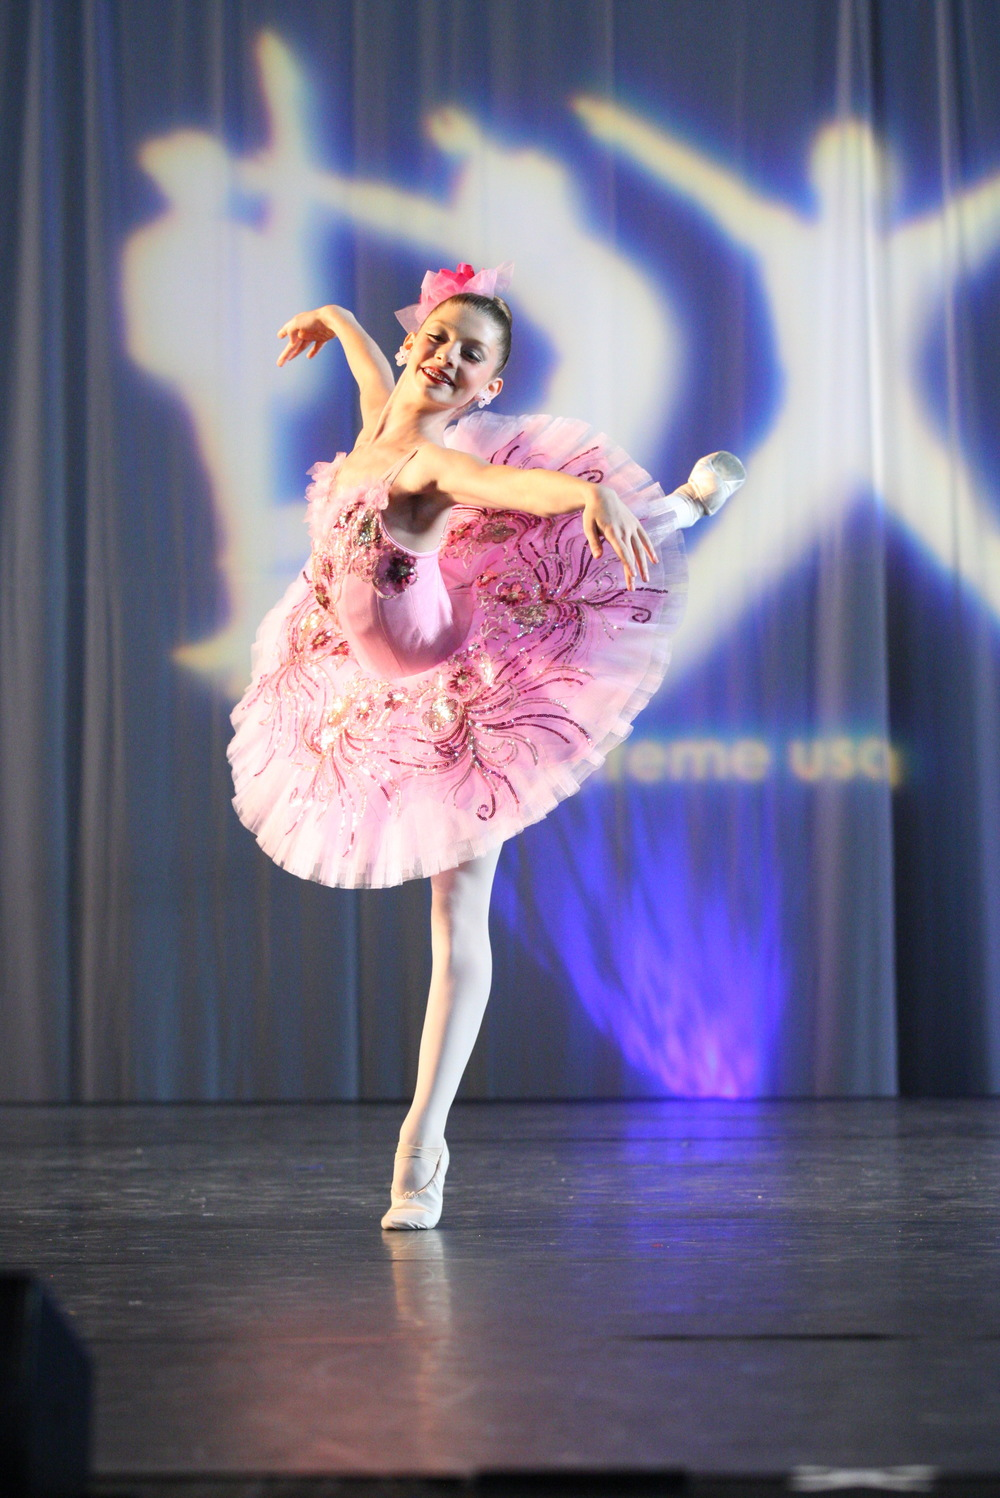 2013 - Laura Siegel from Northland School of Dance